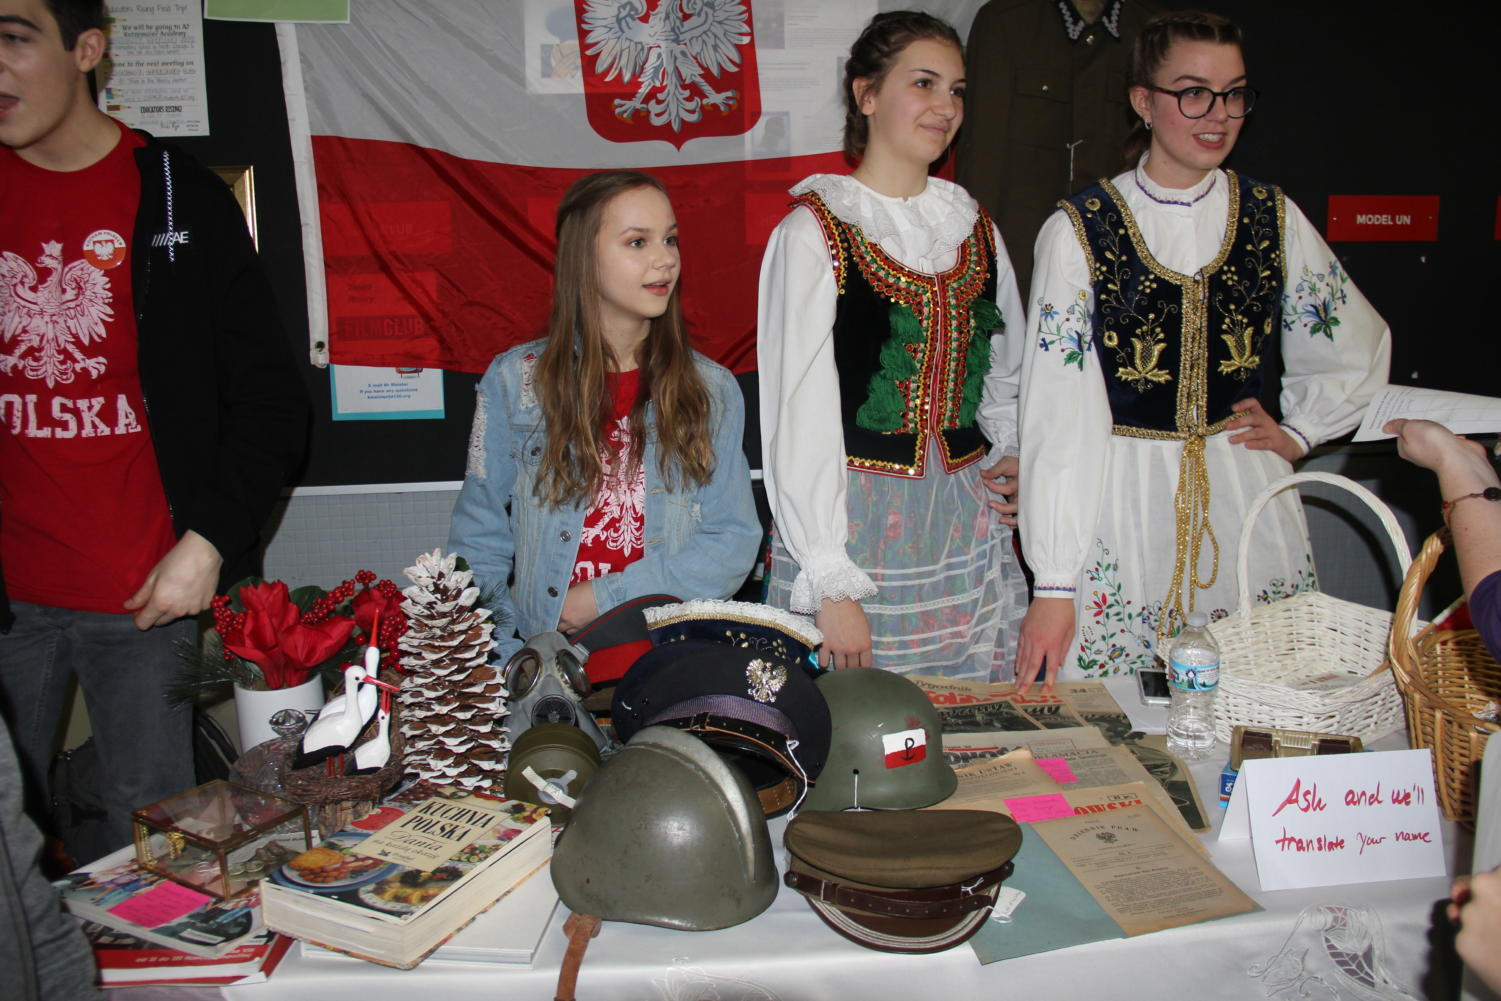 Cultural+Artifacts%3A+Juniors+Maya+Skowronski%2C+Marta+Sikora+and+Claudia+Kuran+%28far+left%29+display+military+helmets%2C+books+and+floral+artifacts++from+Poland.